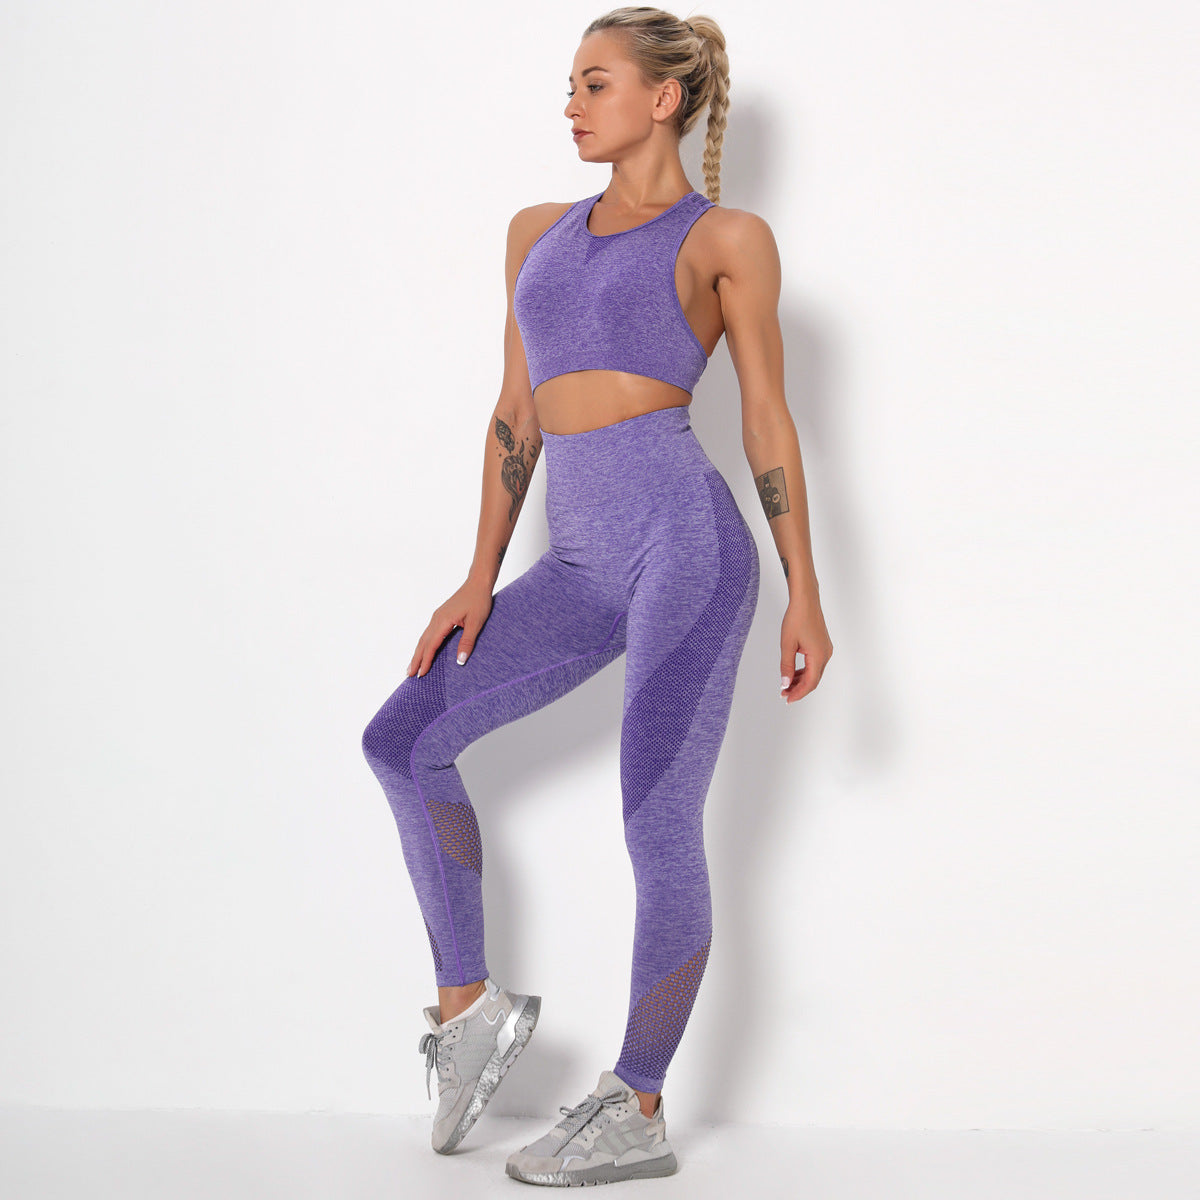 2020 Women Seamless Fast Drying Yoga Suit Sportswear Gym Suit High Waisted Leggings Activewear YS-021